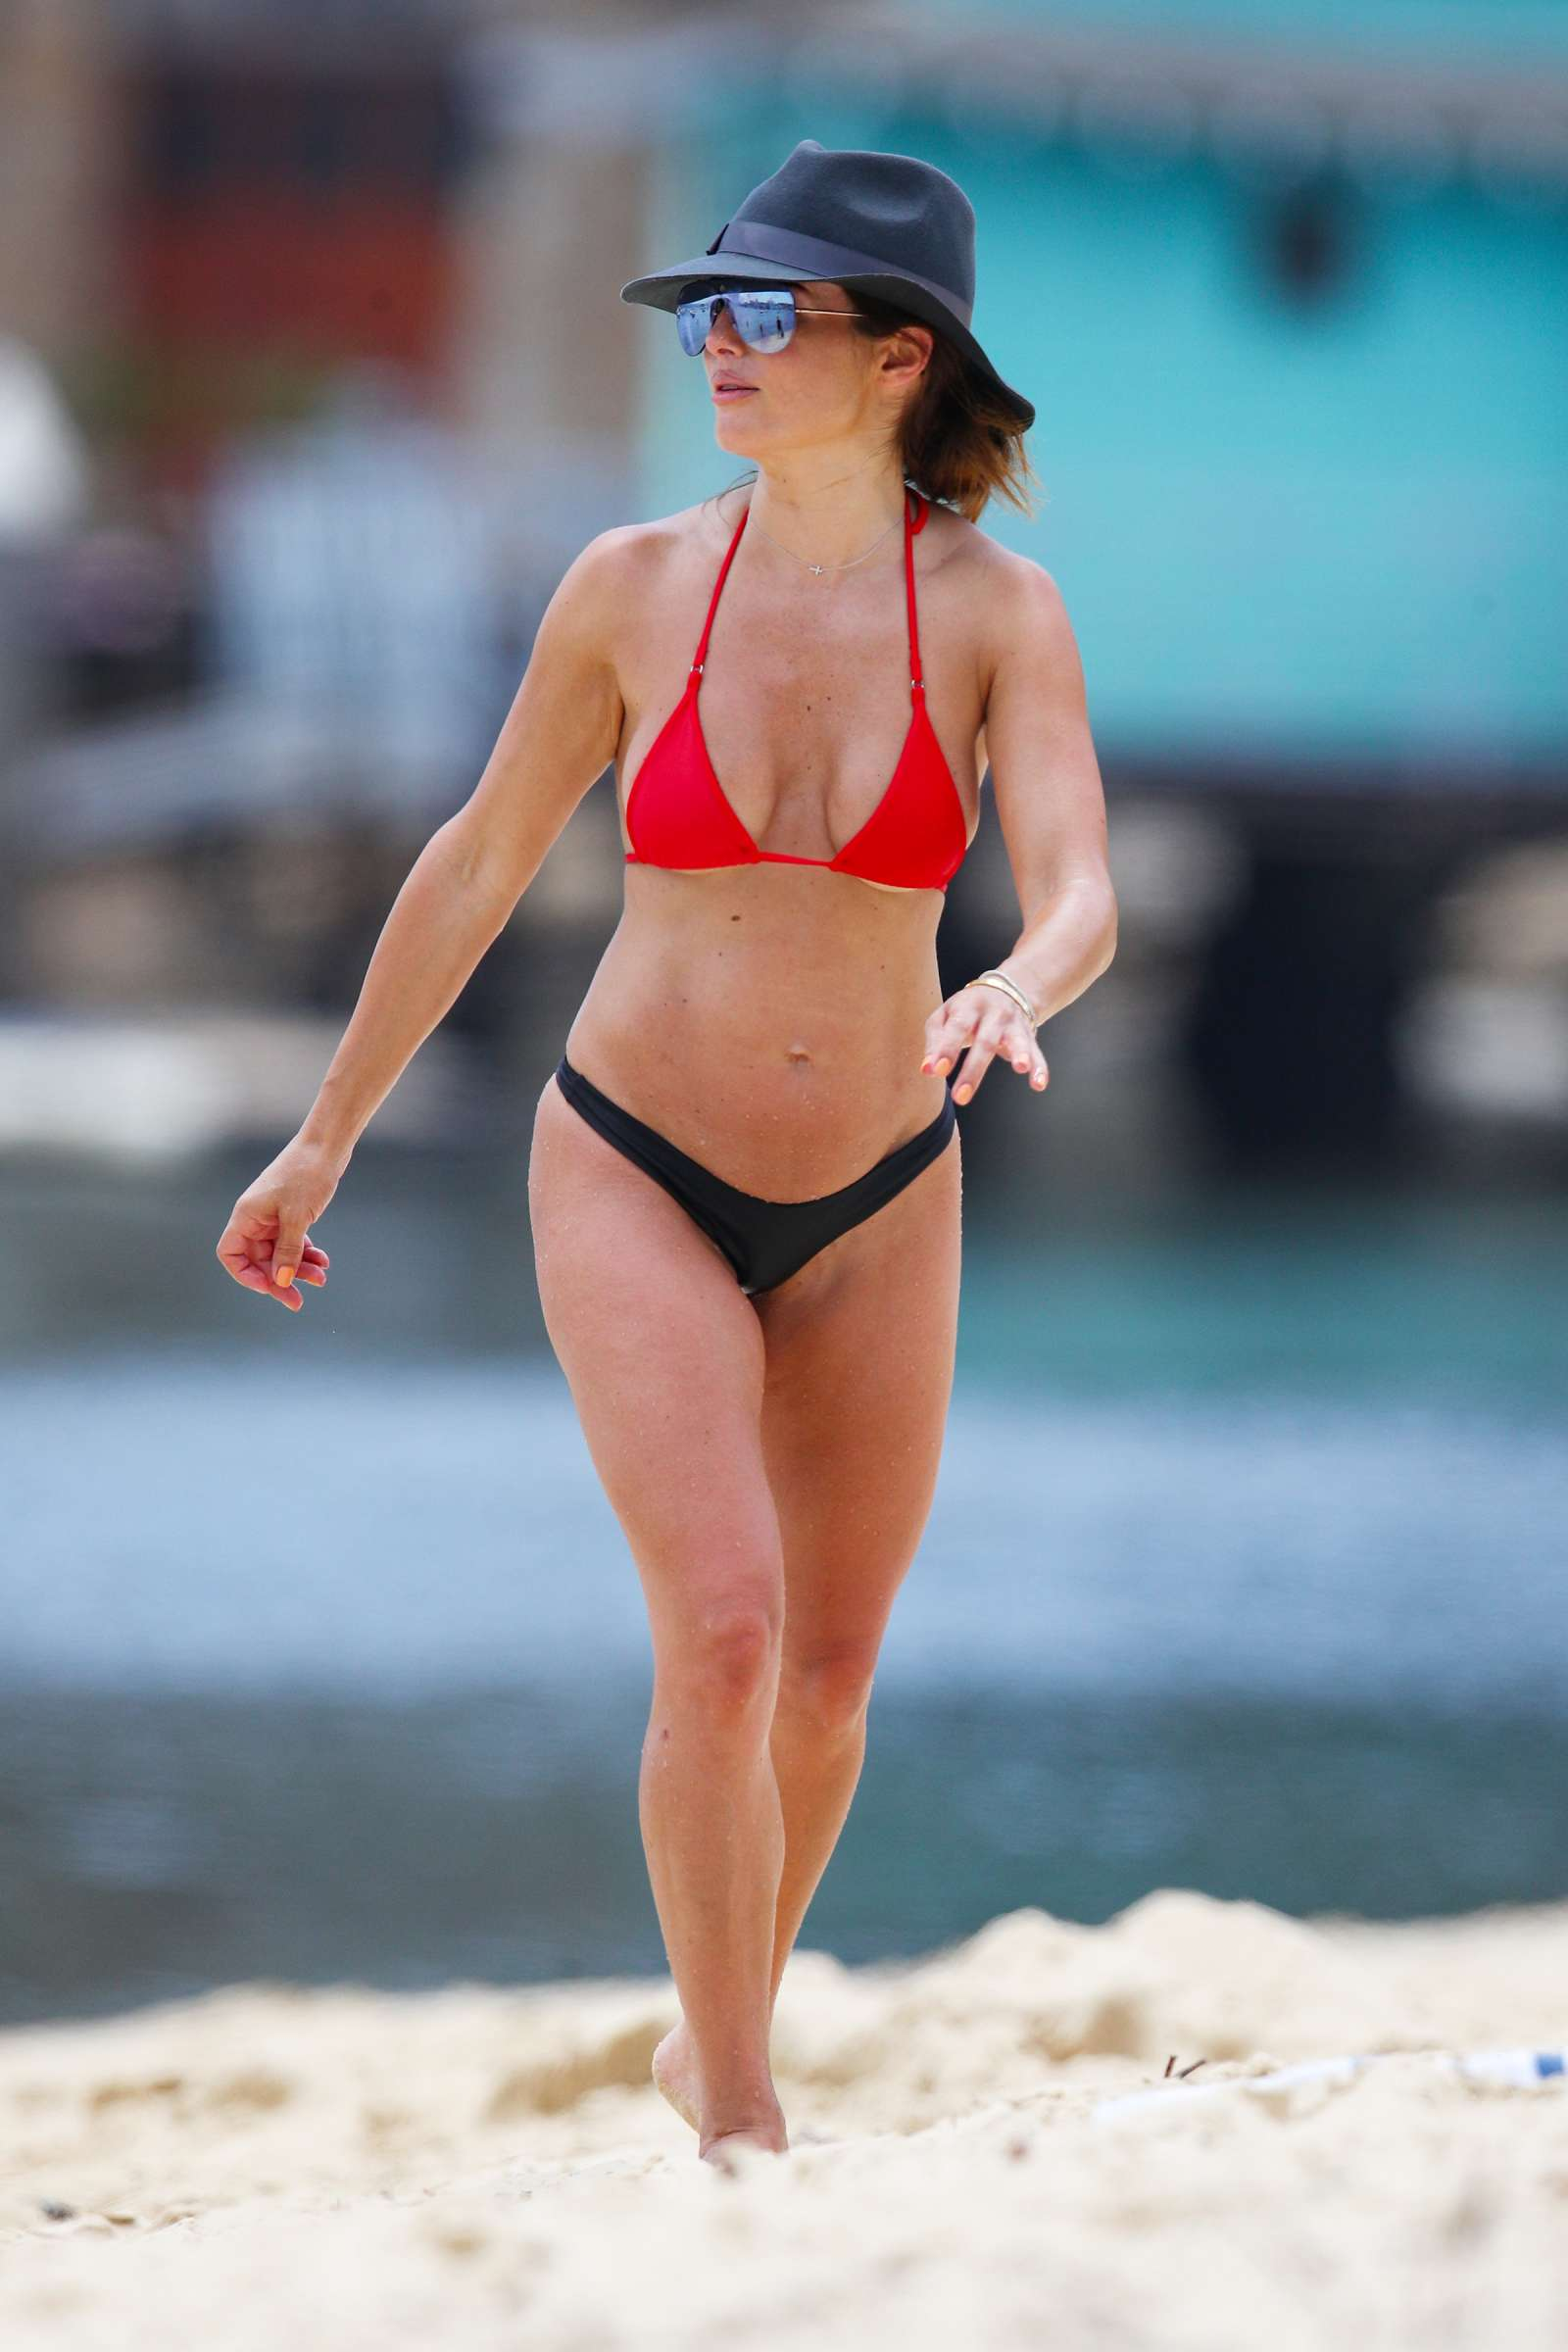 Ada Nicodemou 2019 : Ada Nicodemou in Black and Red Bikini 2019 -14